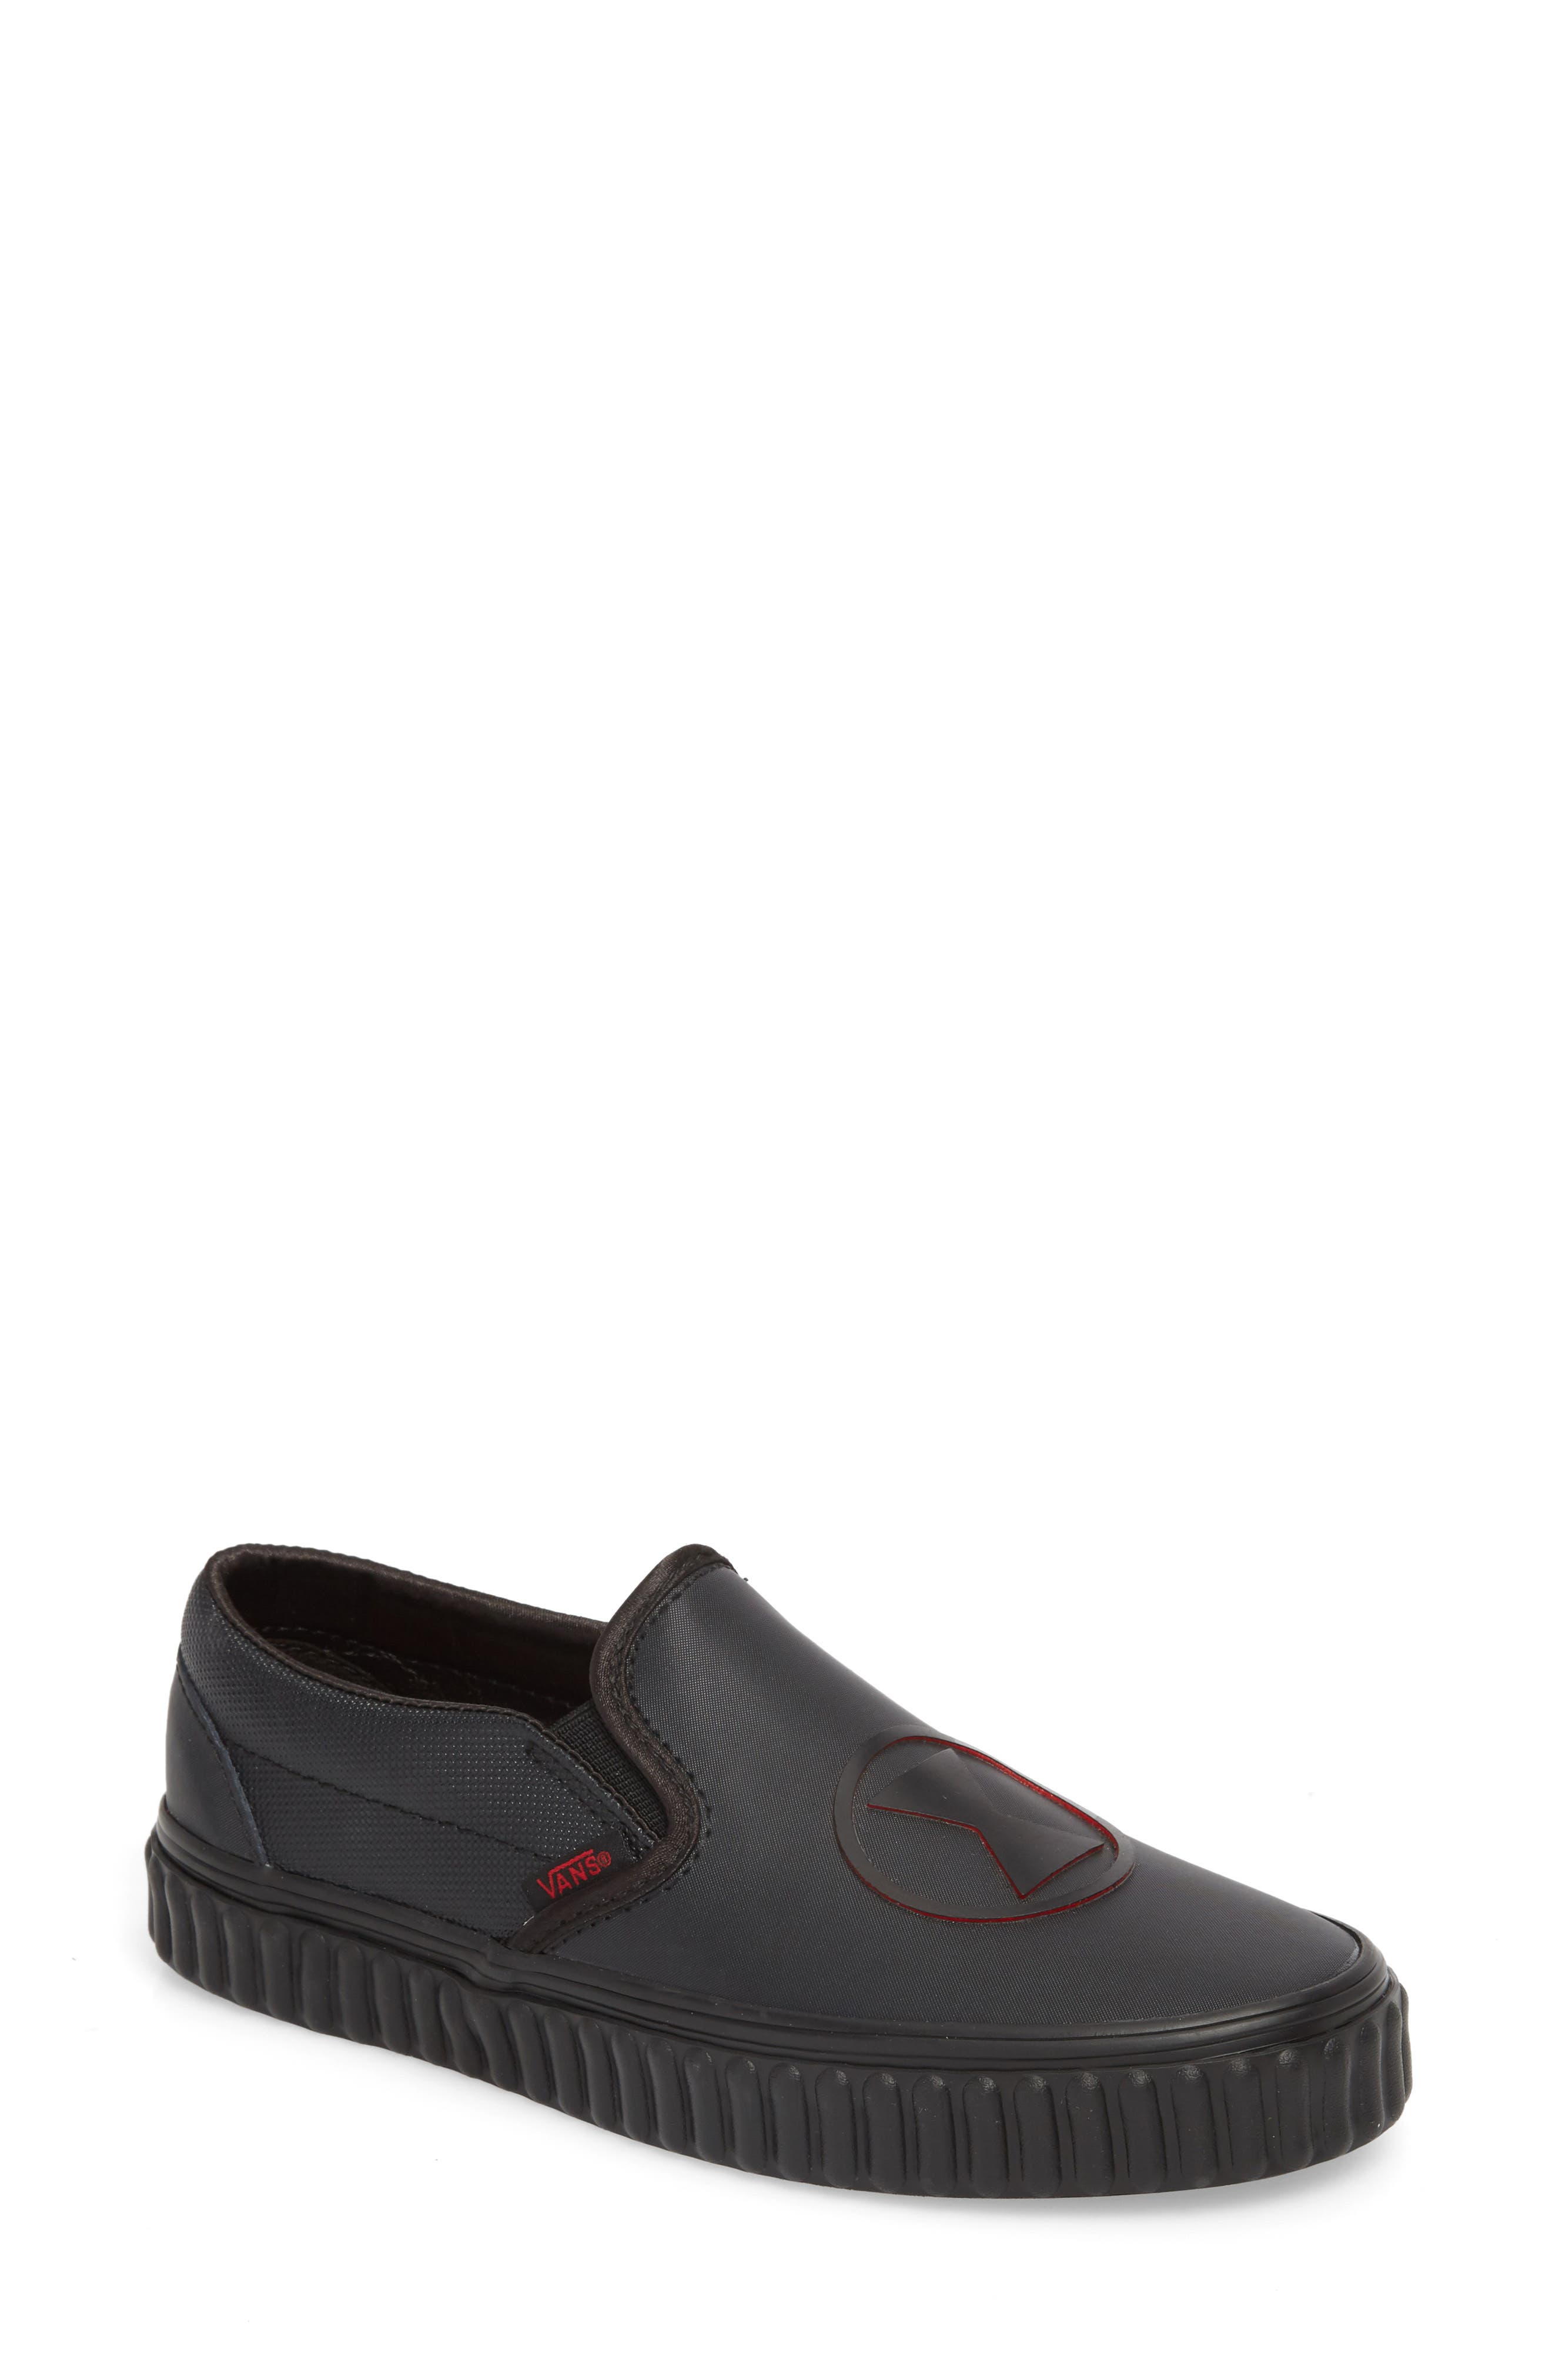 Marvel<sup>®</sup> Black Widow Classic Slip-On,                         Main,                         color, 001